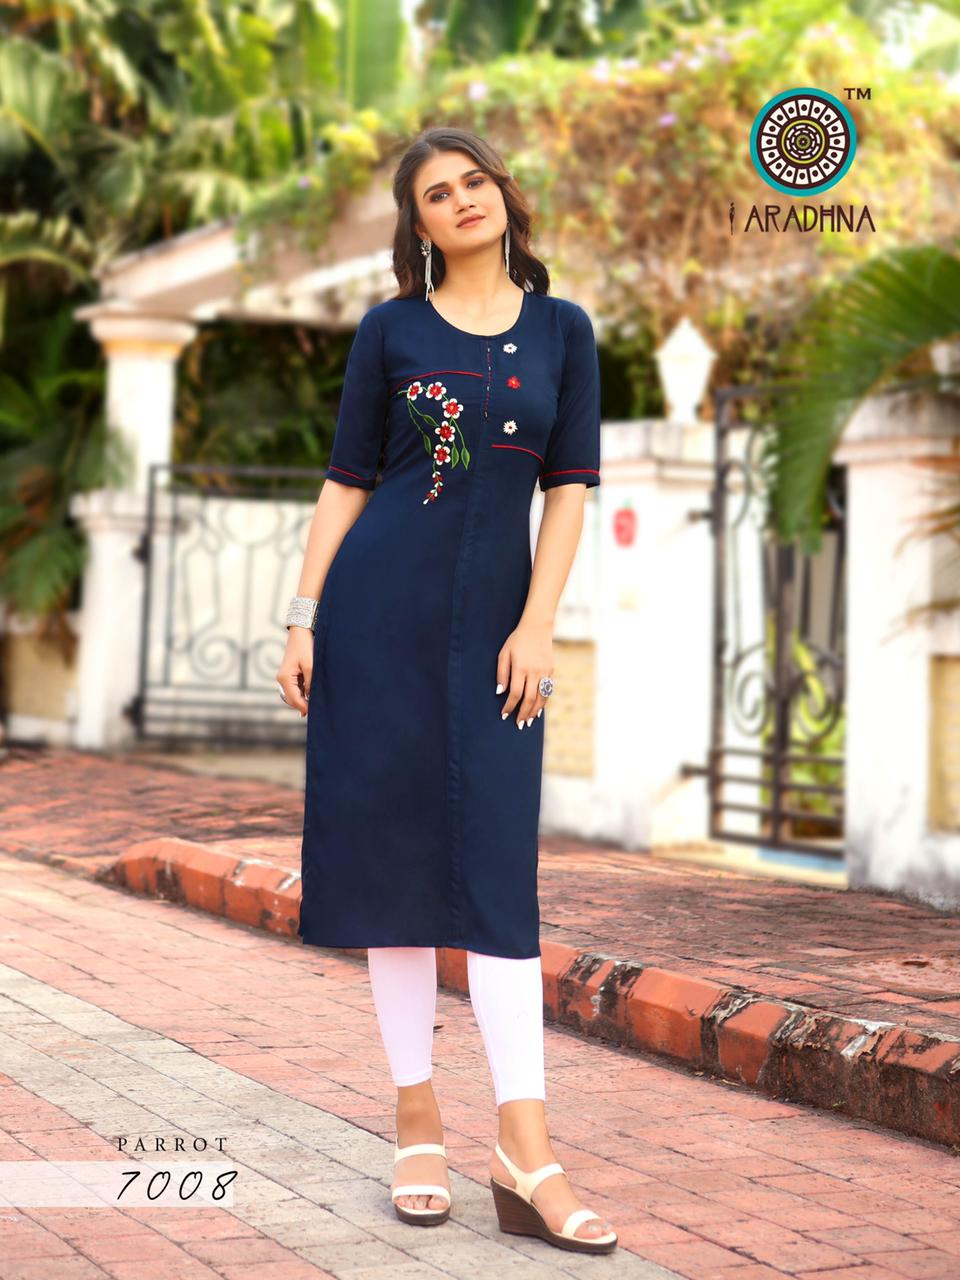 Aradhna Parrot Vol 7 Kurti Wholesale Catalog 11 Pcs 4 - Aradhna Parrot Vol 7 Kurti Wholesale Catalog 11 Pcs